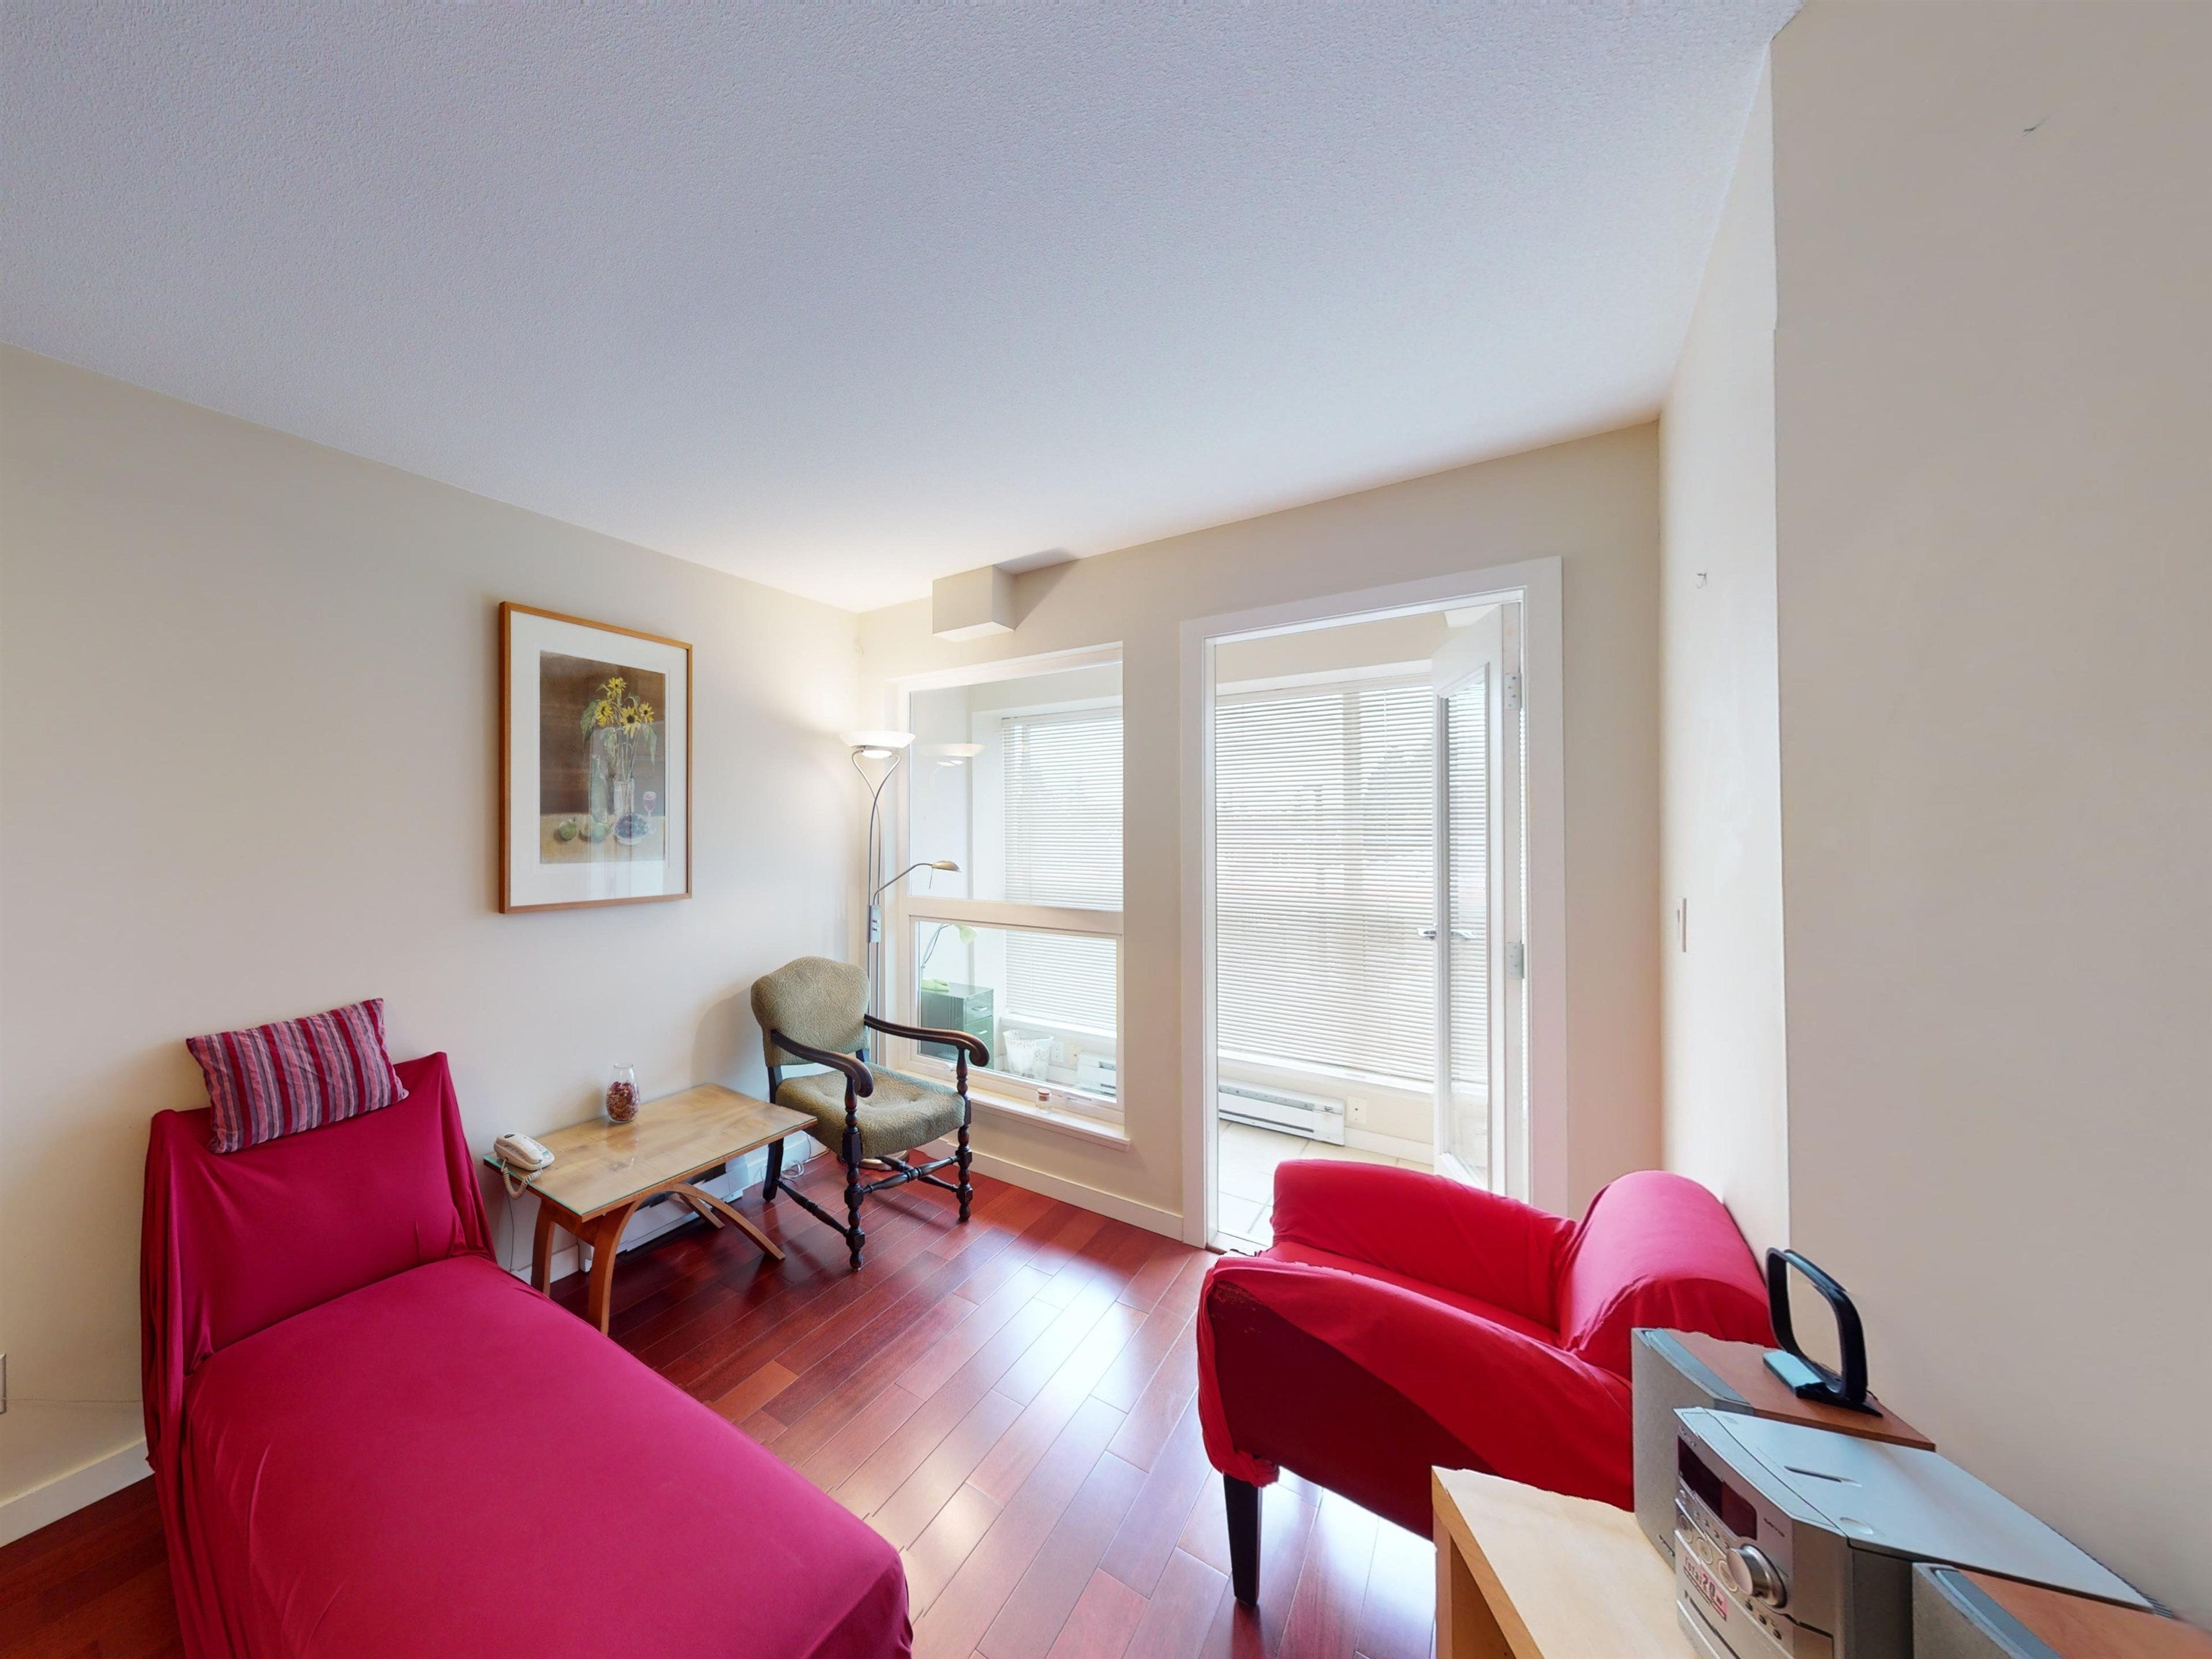 317 2891 E HASTINGS STREET - Hastings Apartment/Condo for sale, 1 Bedroom (R2615463) - #6